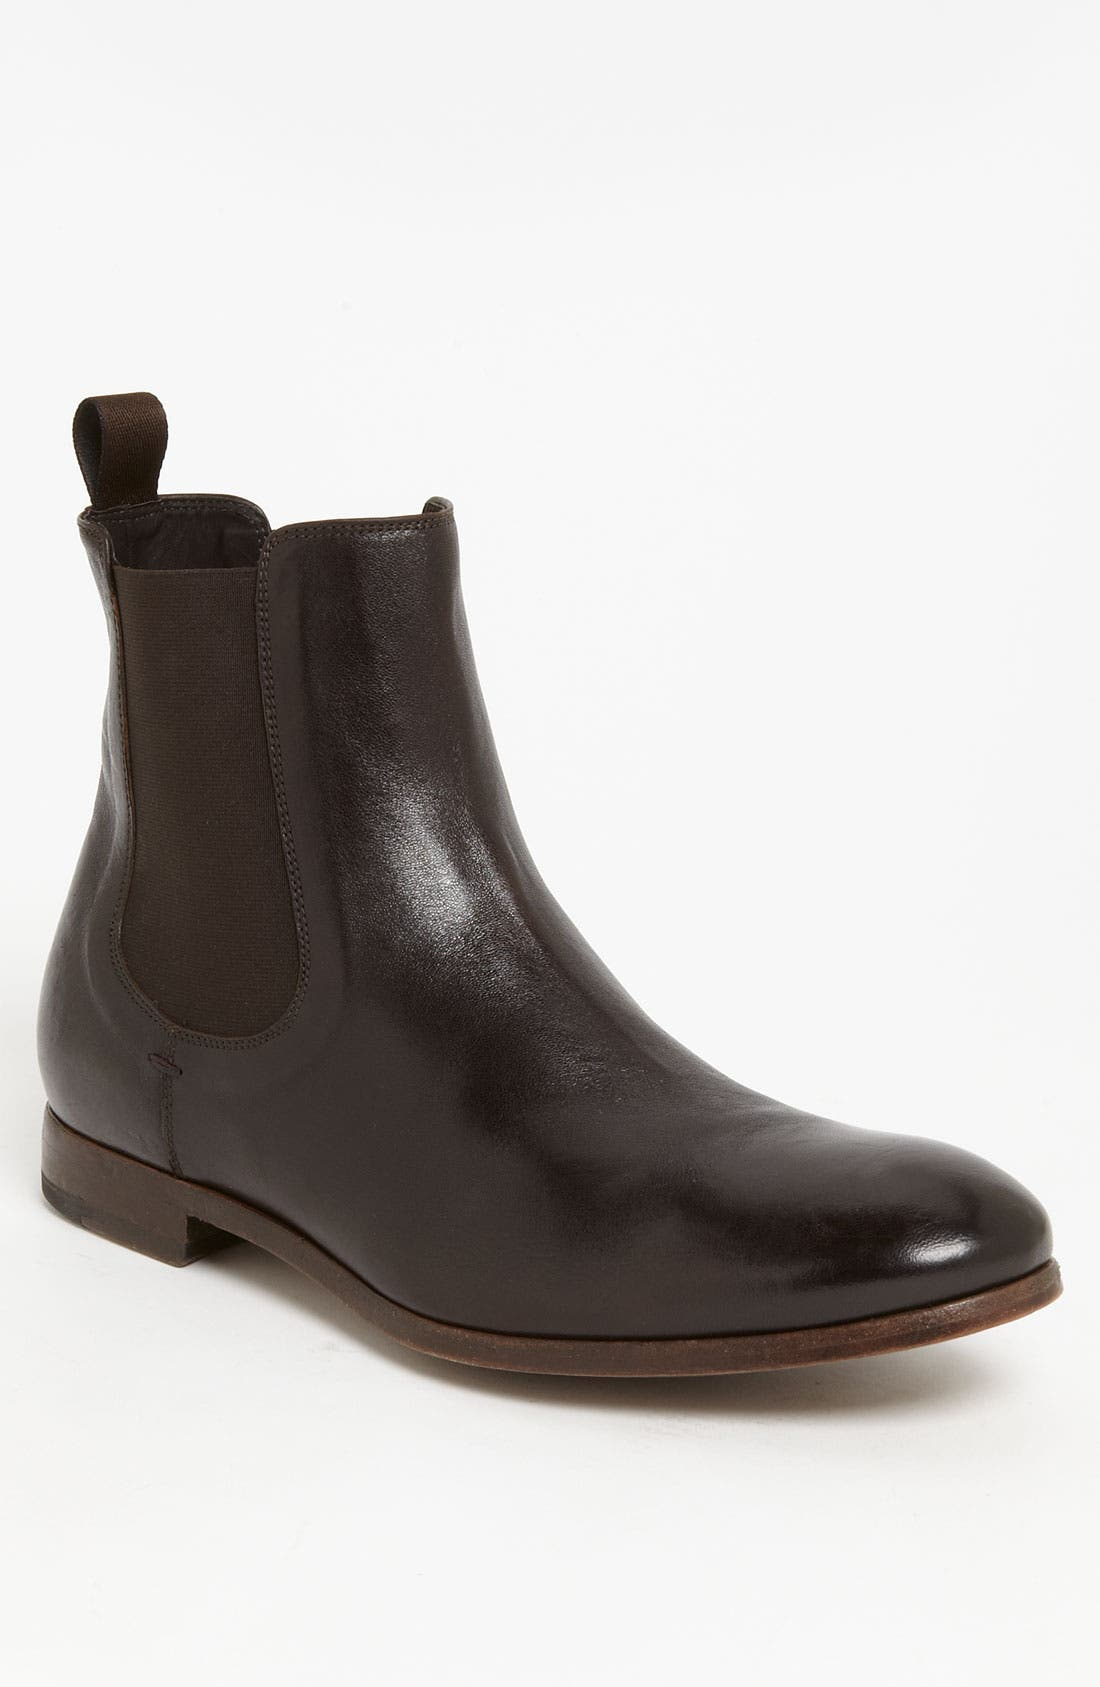 Main Image - Paul Smith 'Otter' Chelsea Boot